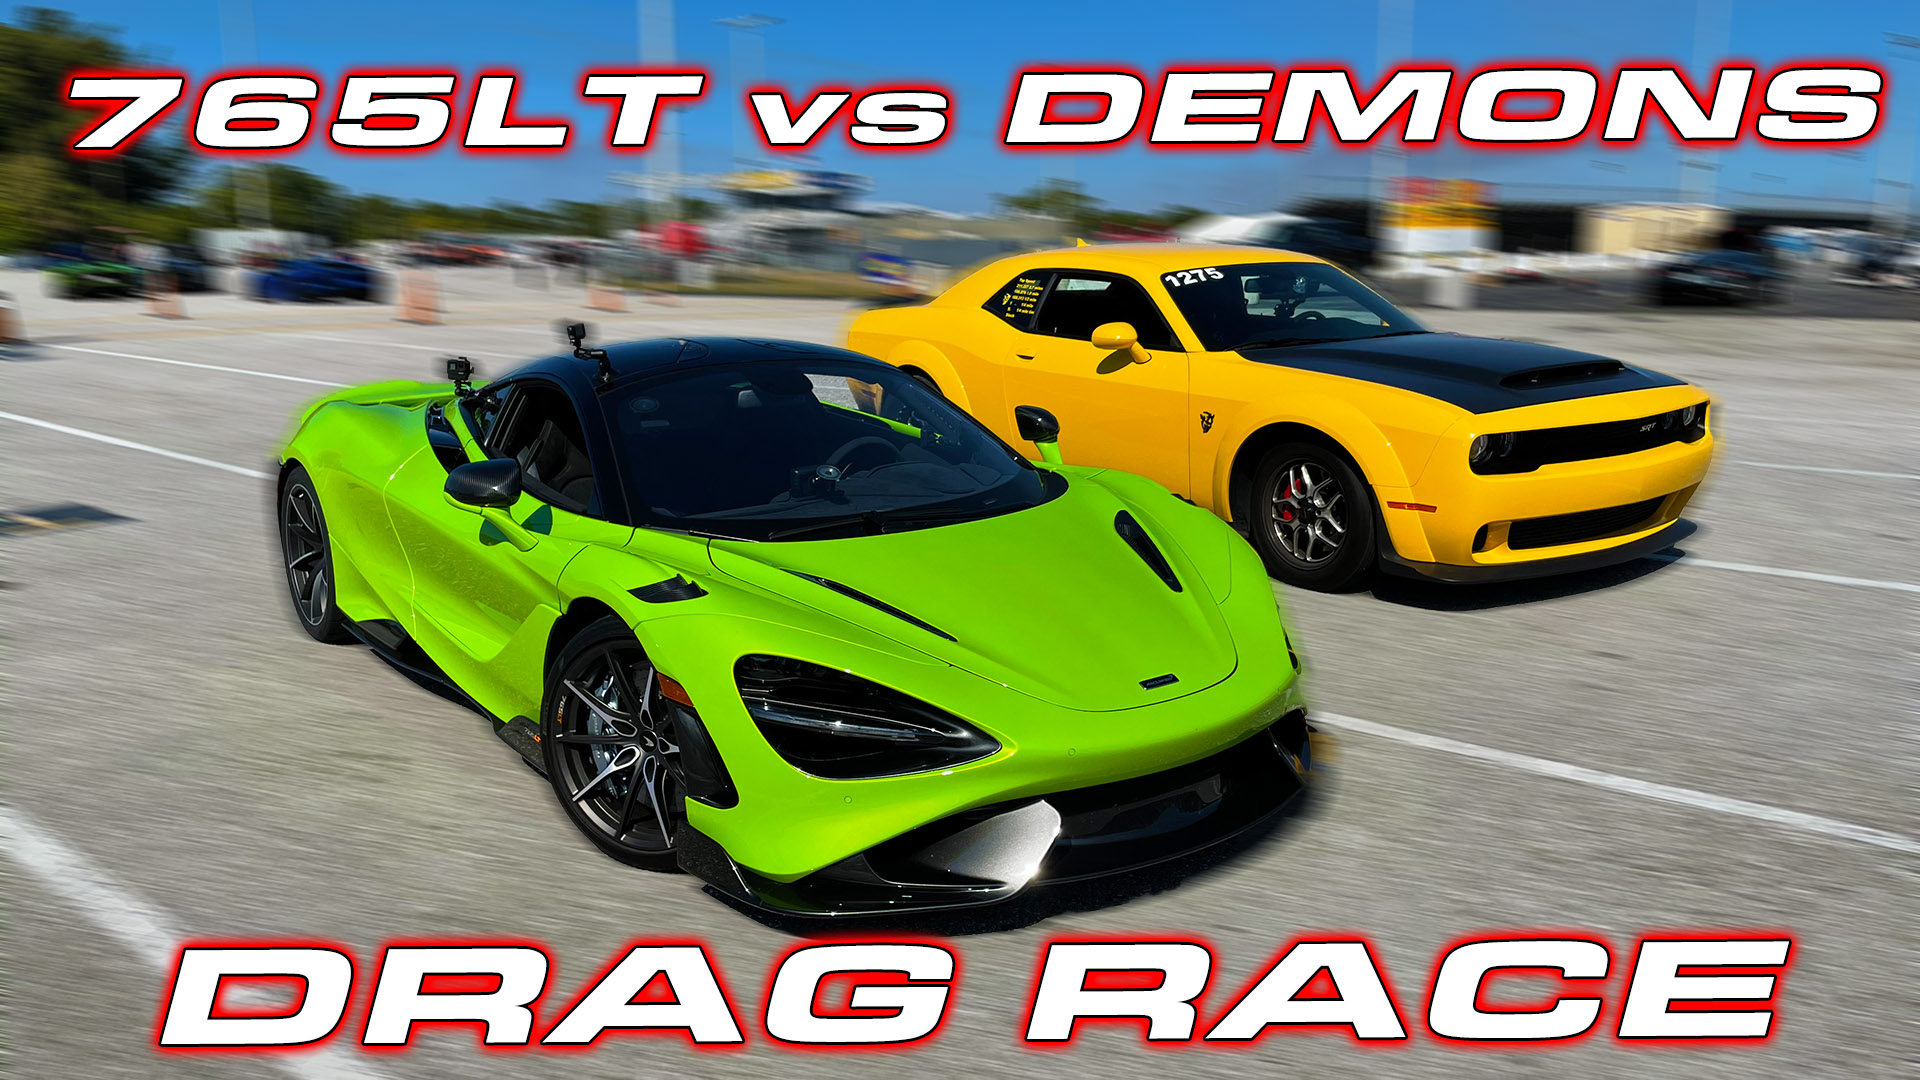 Dodge Demon vs McLaren 765LT